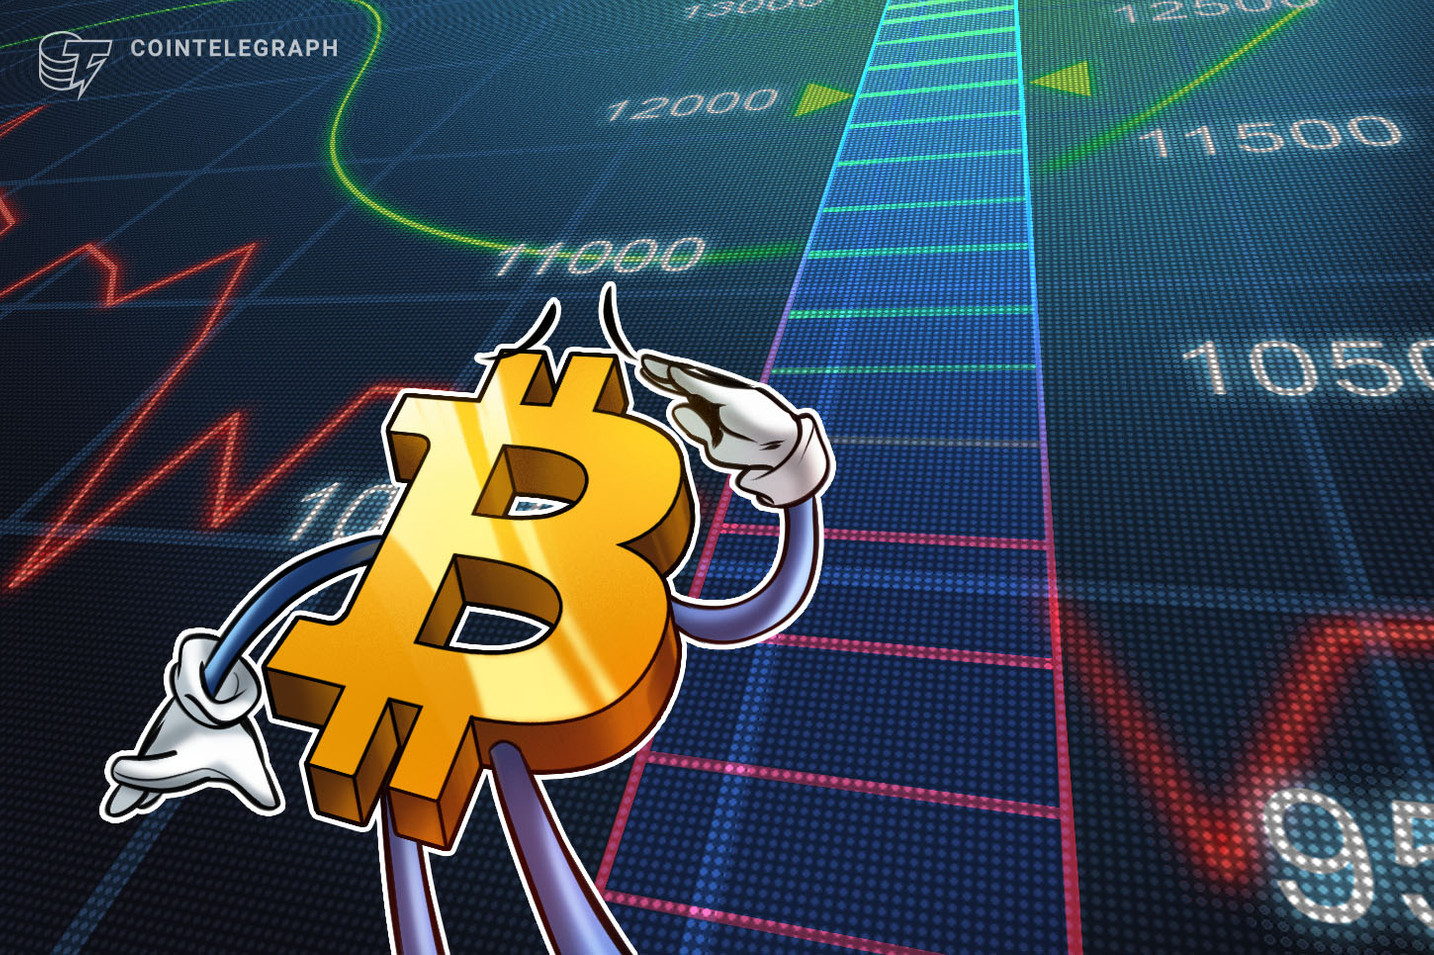 Bitcoin Breaks $12,000 Before Plunging, Crypto Markets Turn Downward